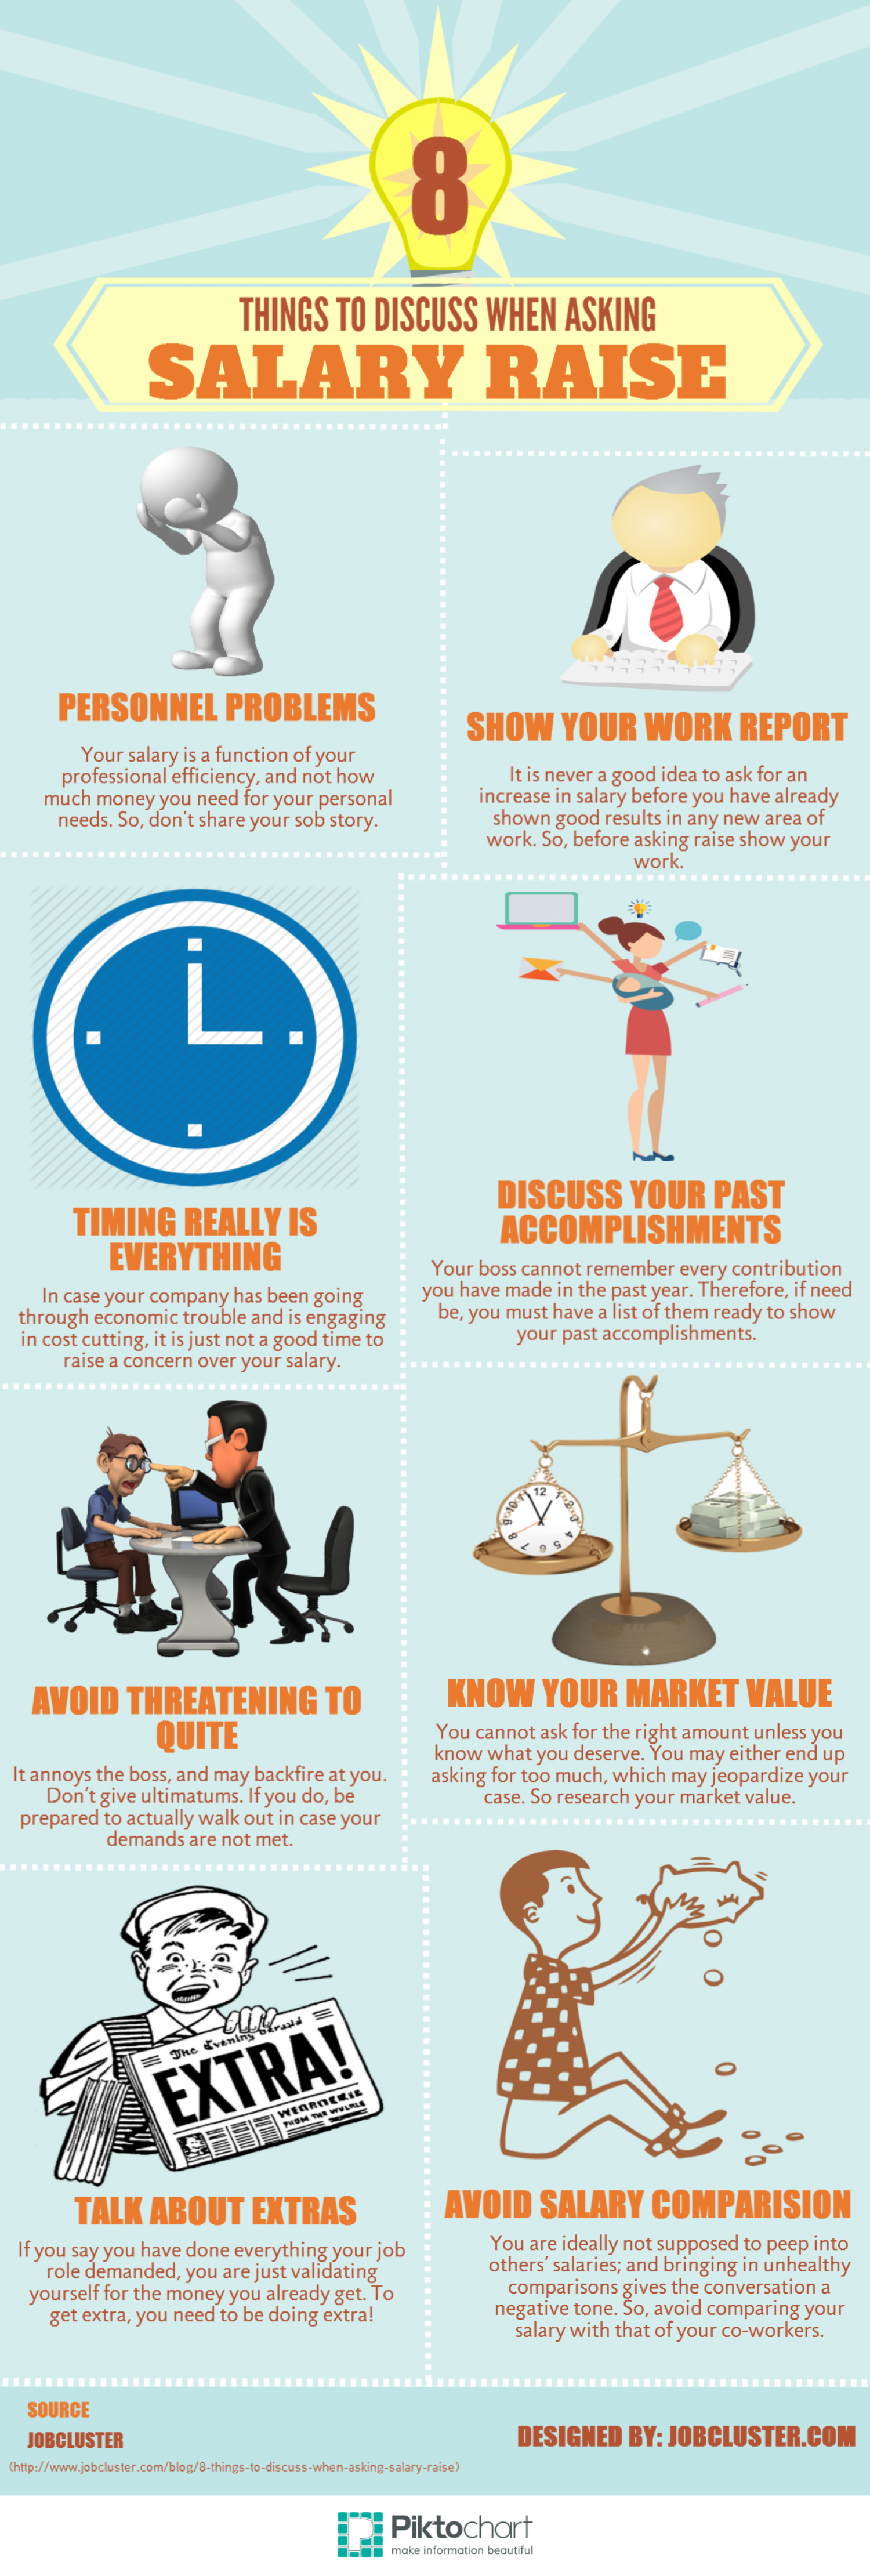 8 Things to Discuss for Asking Salary Raise Infographic